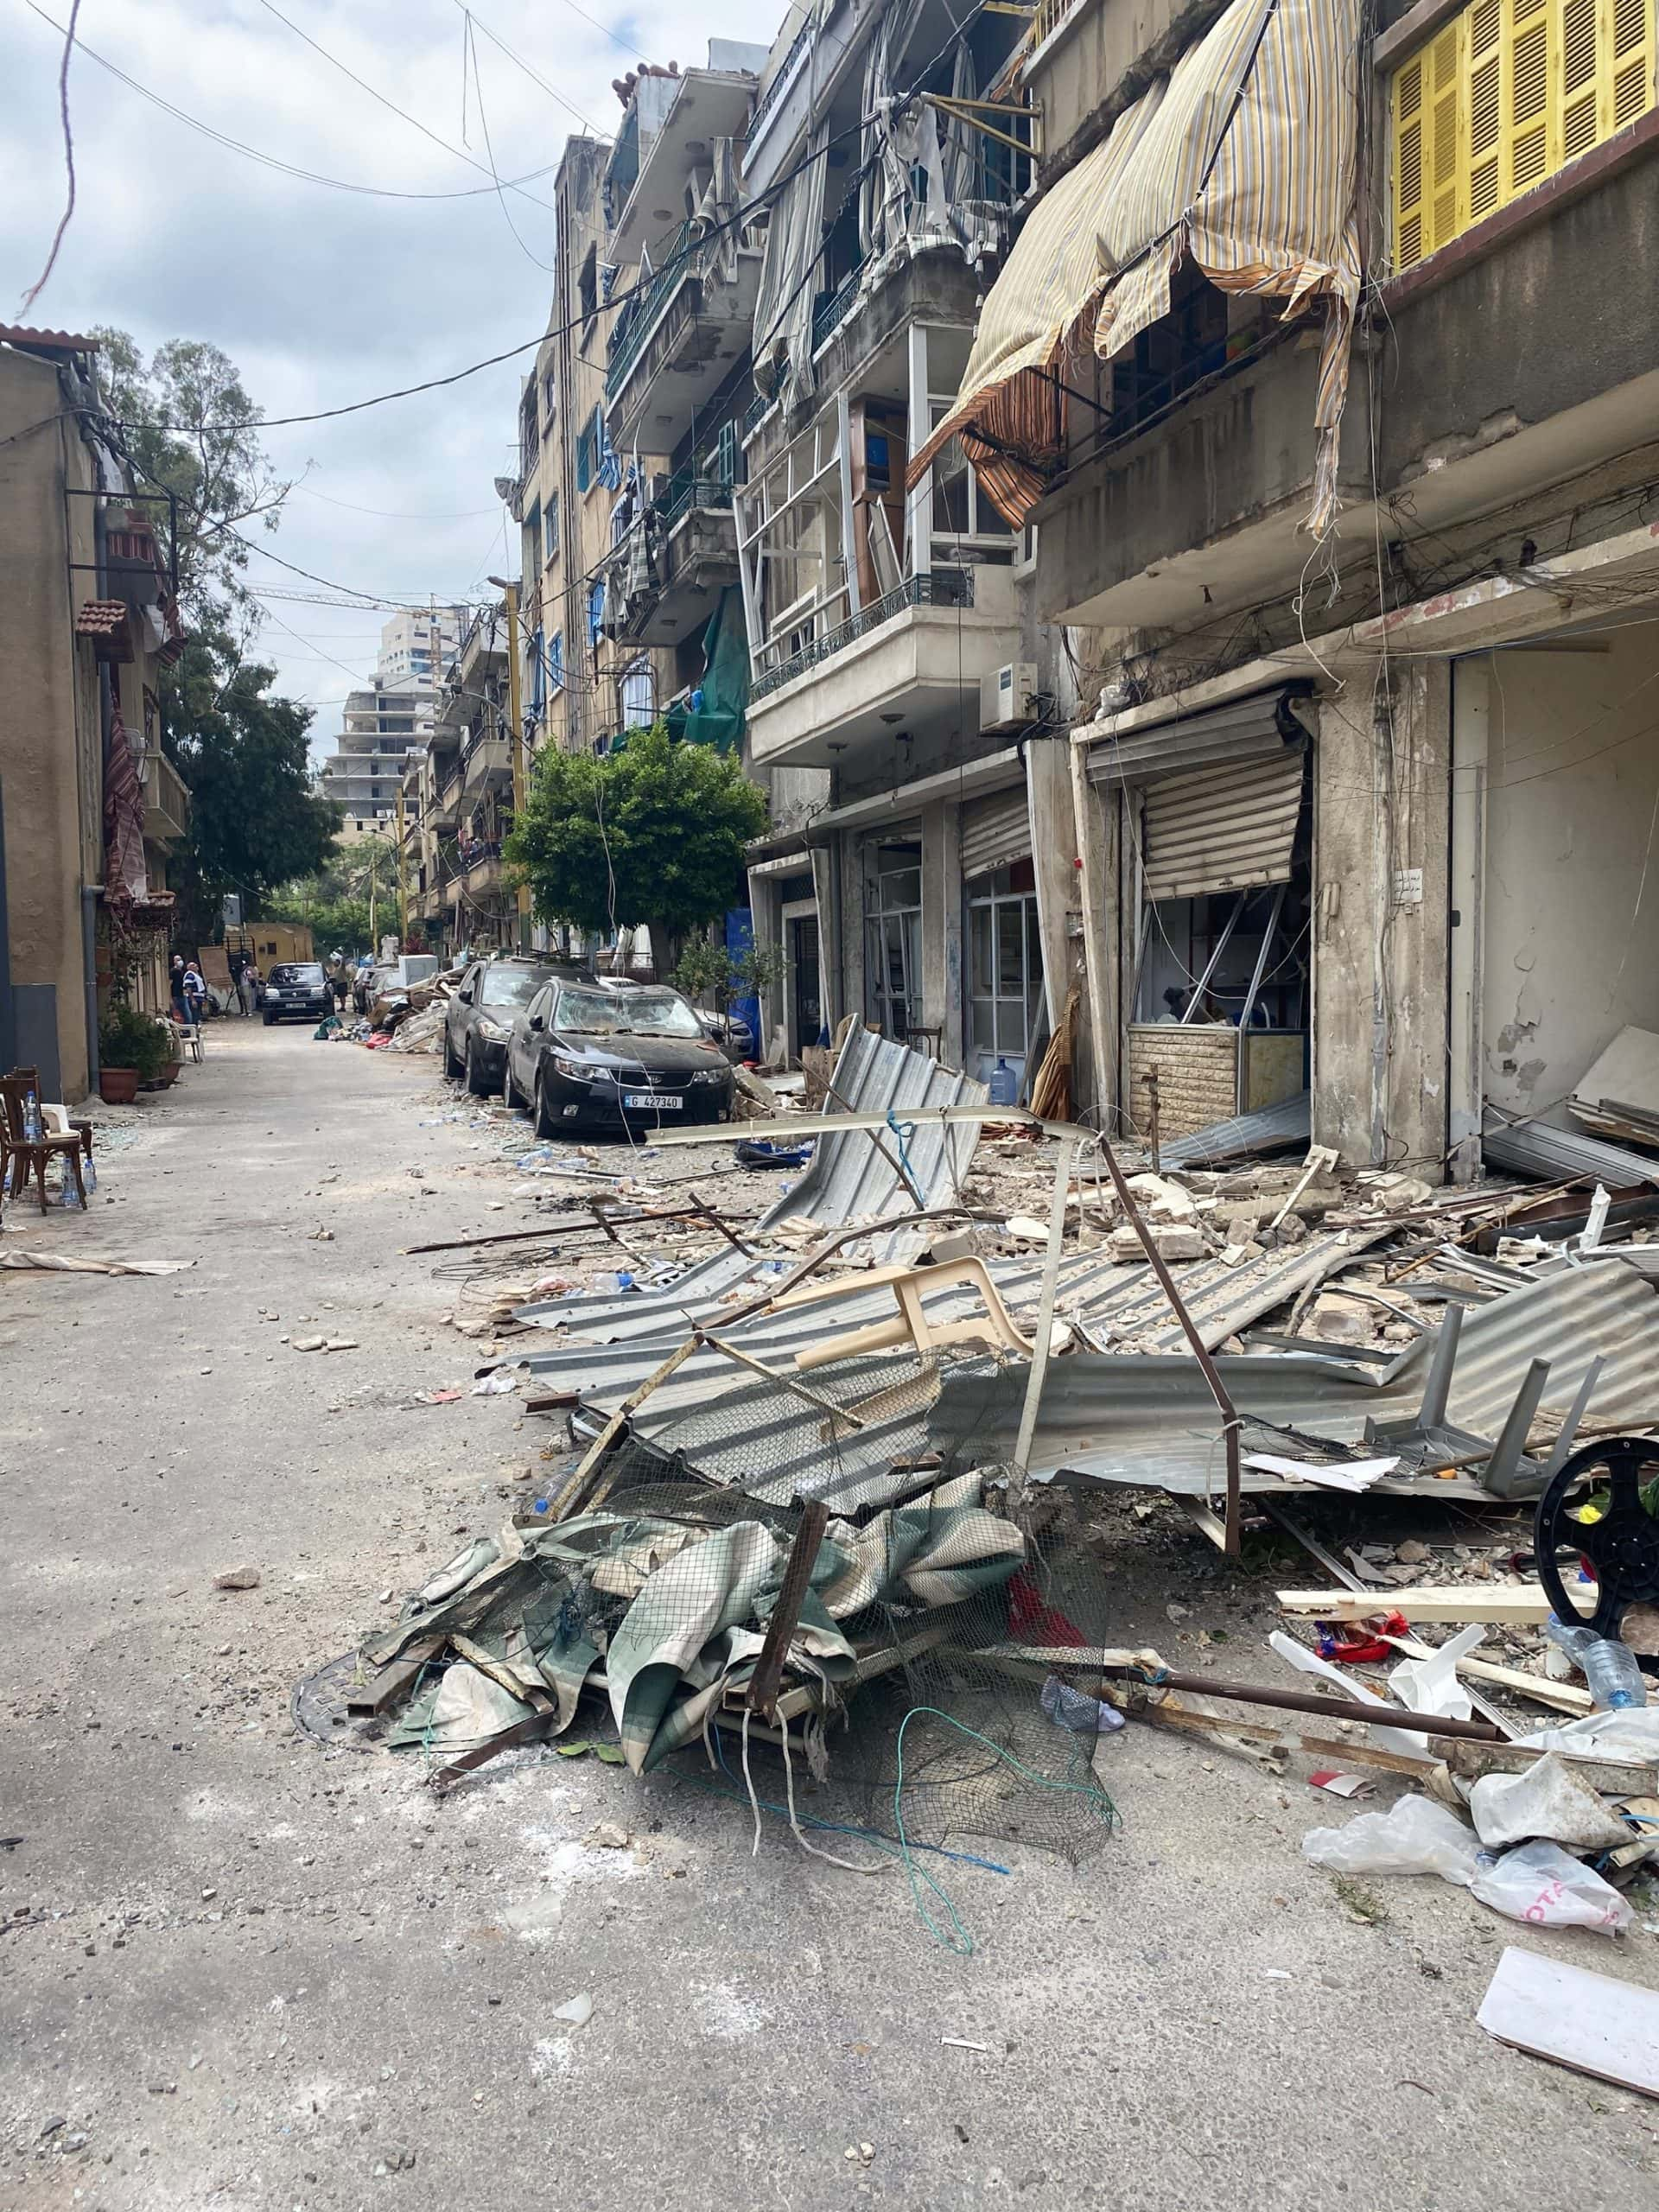 Christian partner impacted by huge explosion that devastated Beirut